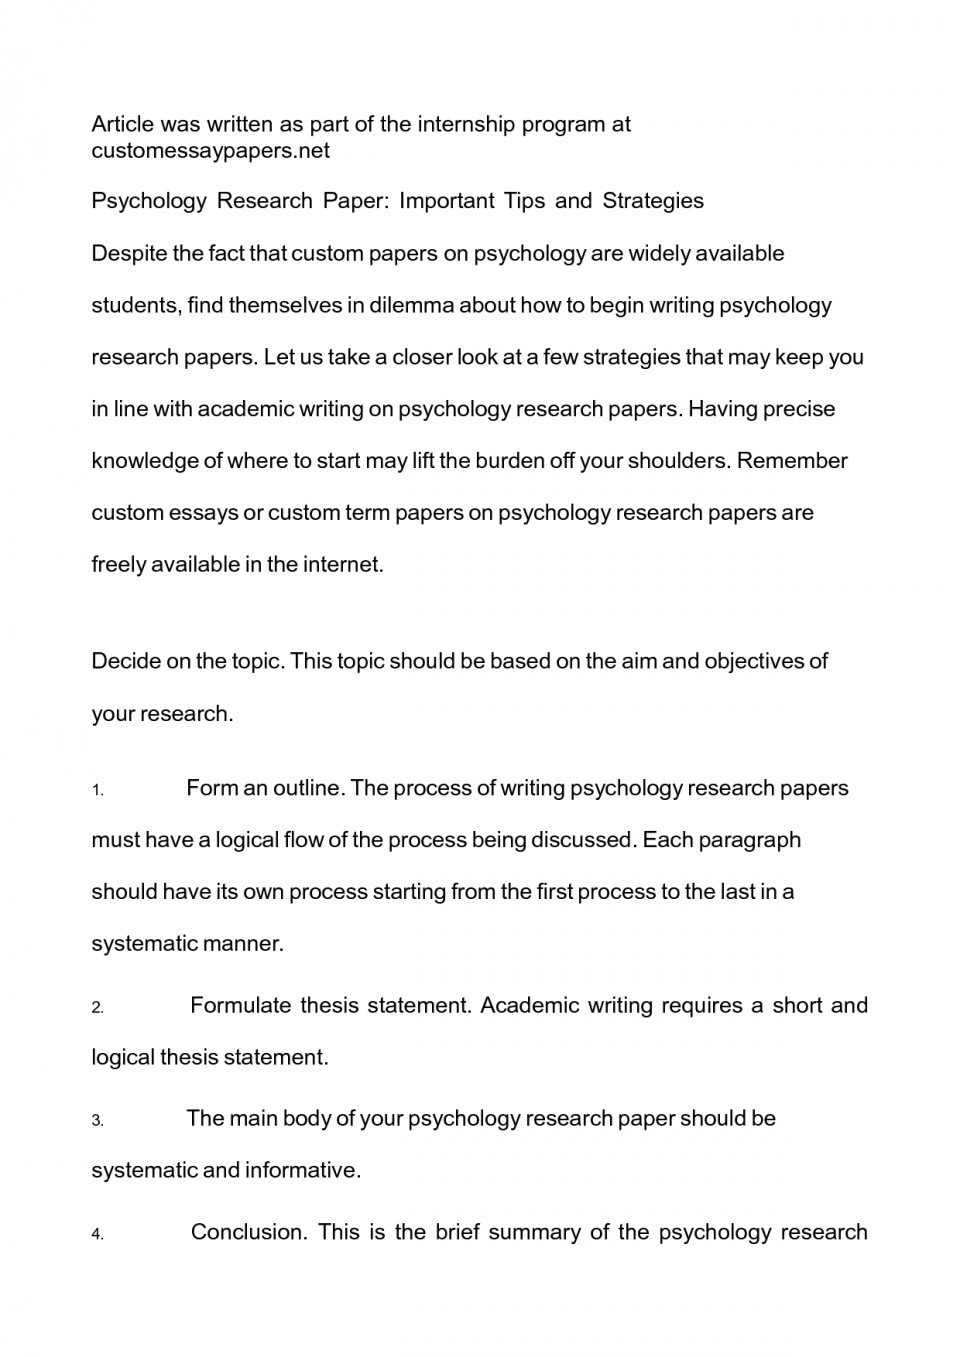 012 Research Paper Psychology Writing Services Topics College Awesome Students 960